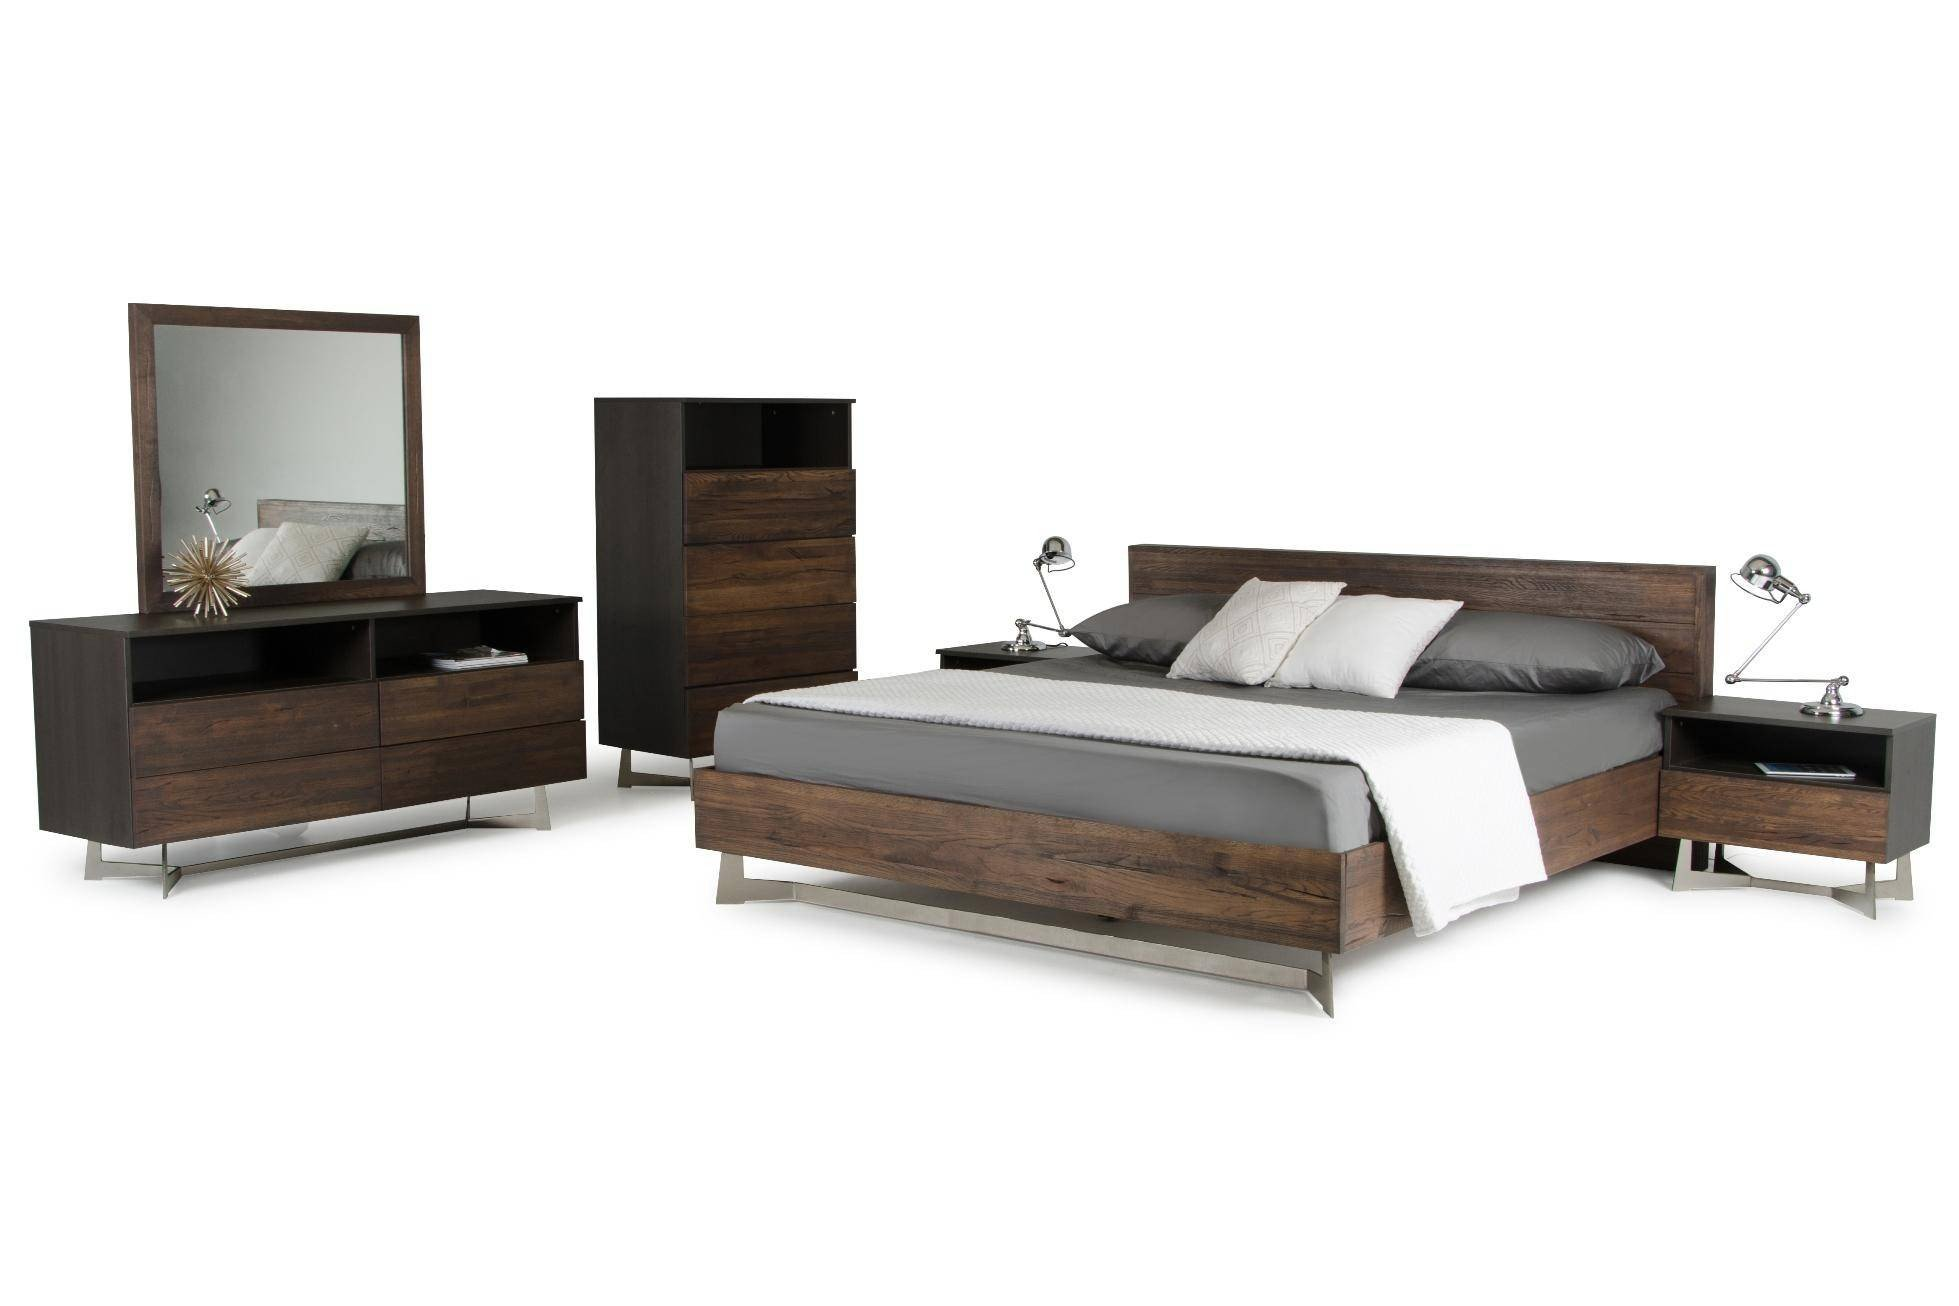 Oak King Bedroom Set Beautiful Vig Modrest Wharton Dark Aged Oak King Bedroom Set 2pcs